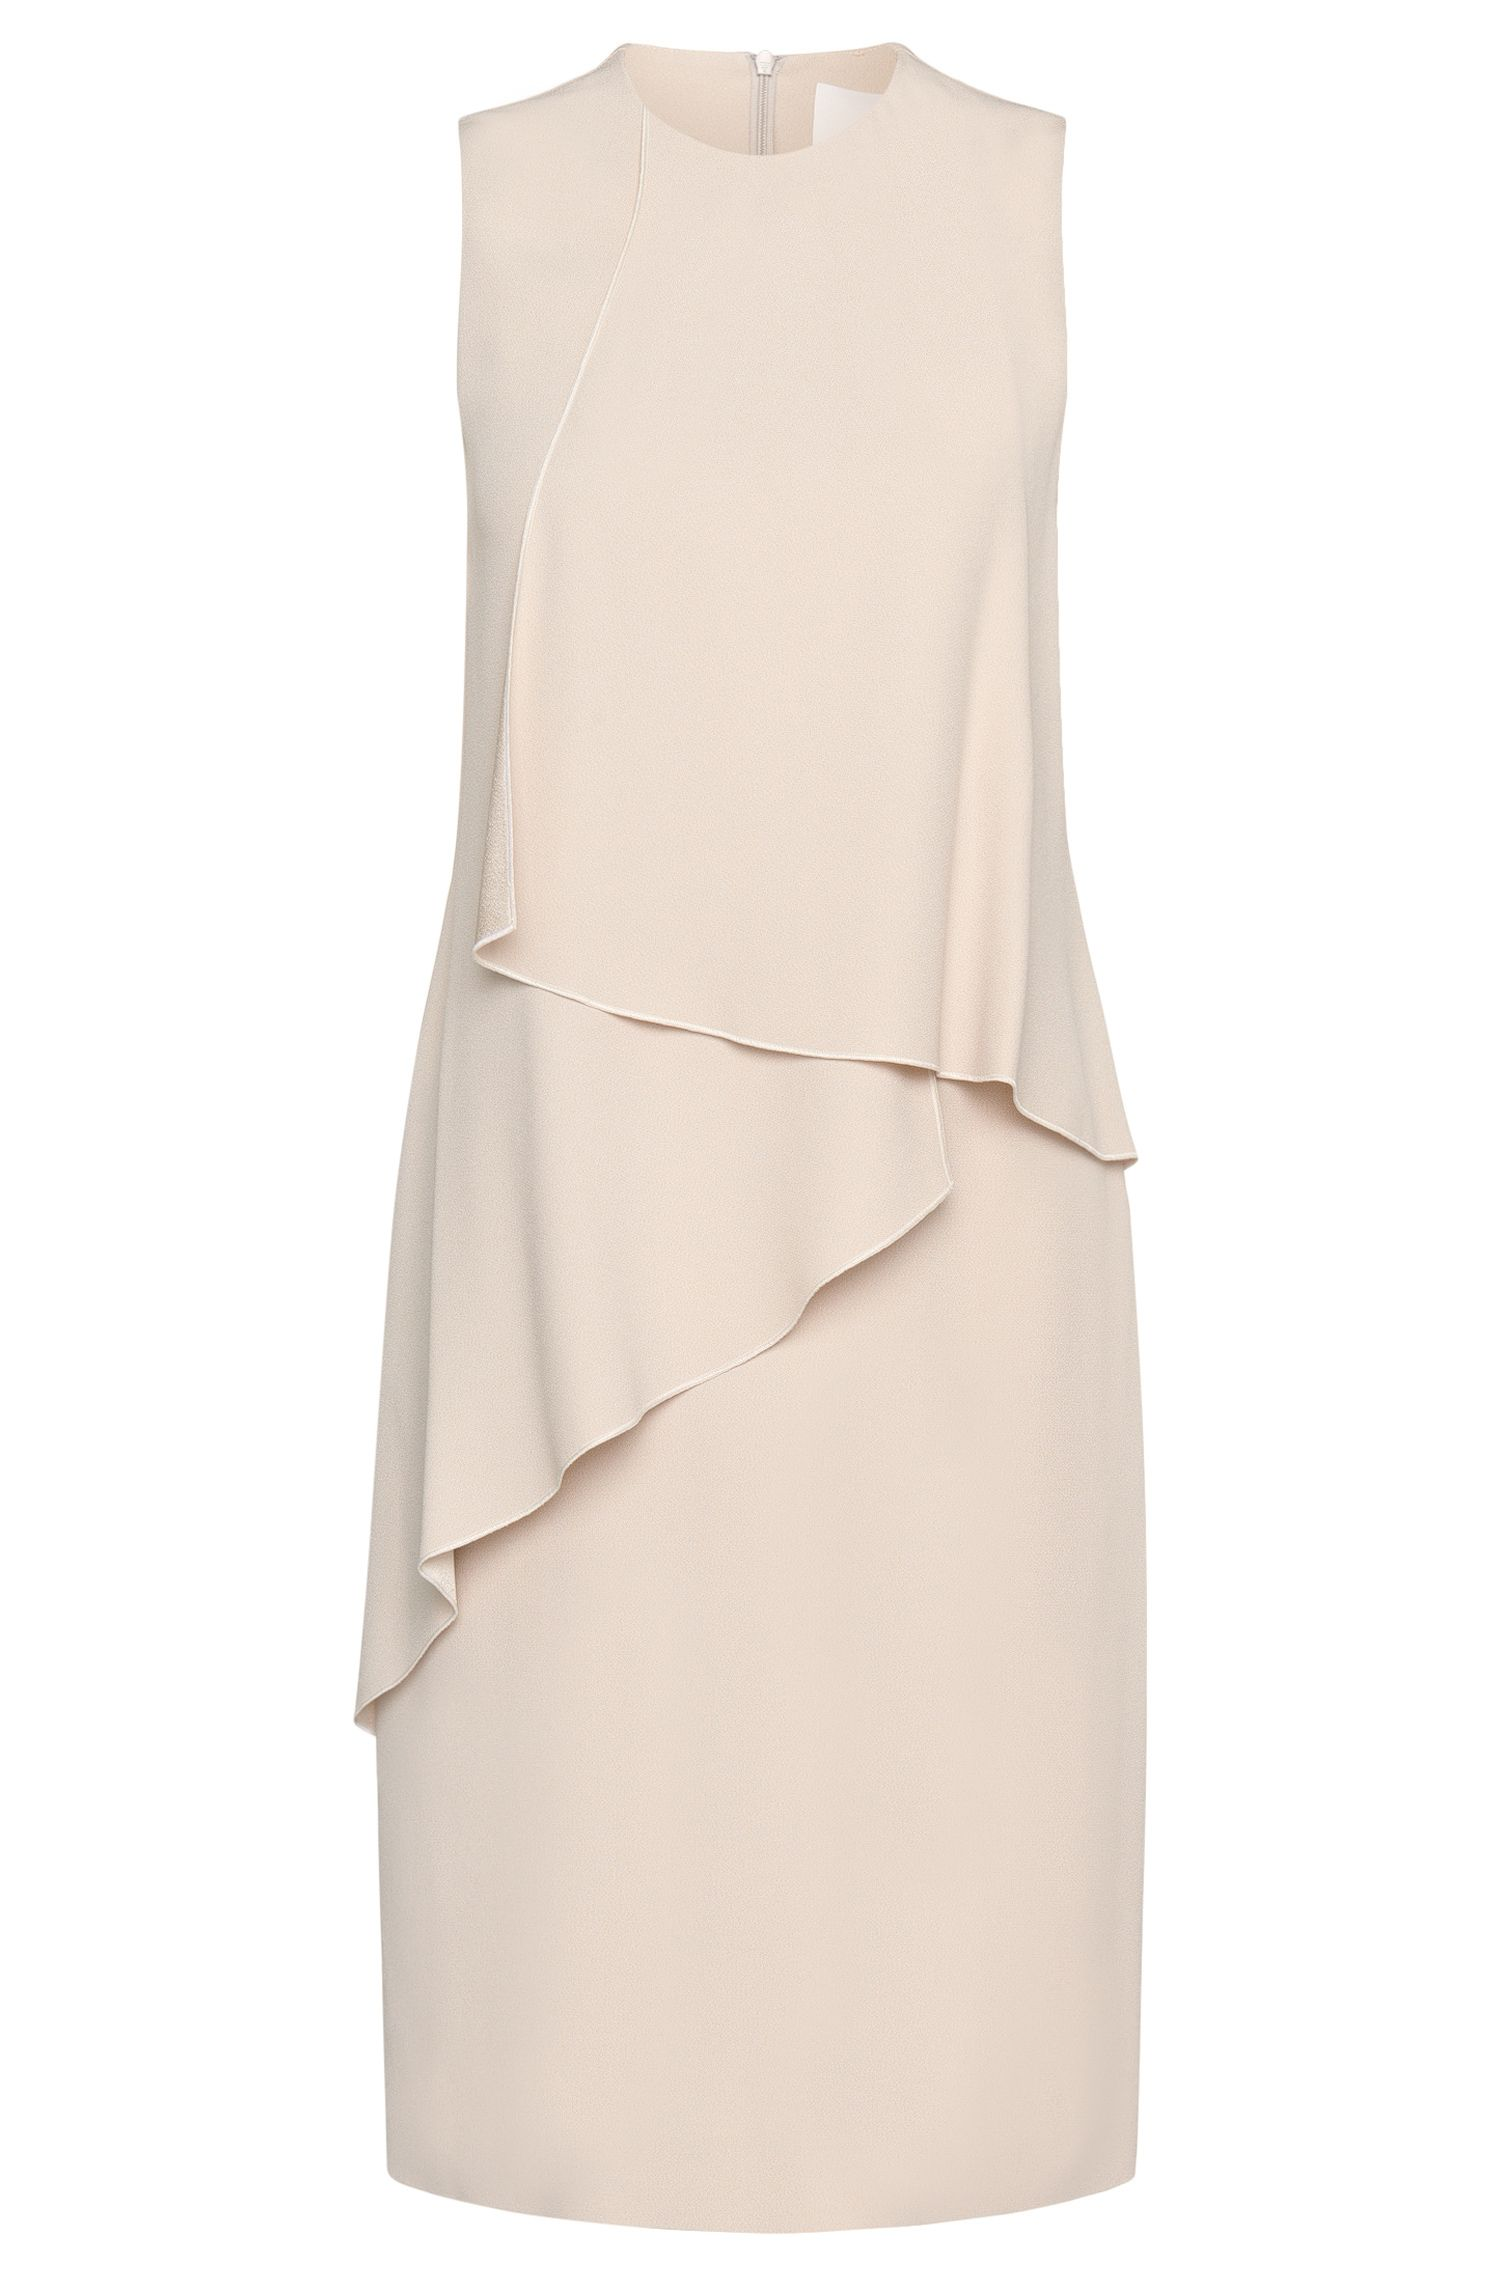 'Dalynea' | Crepe Sating Layered Flounce Dress